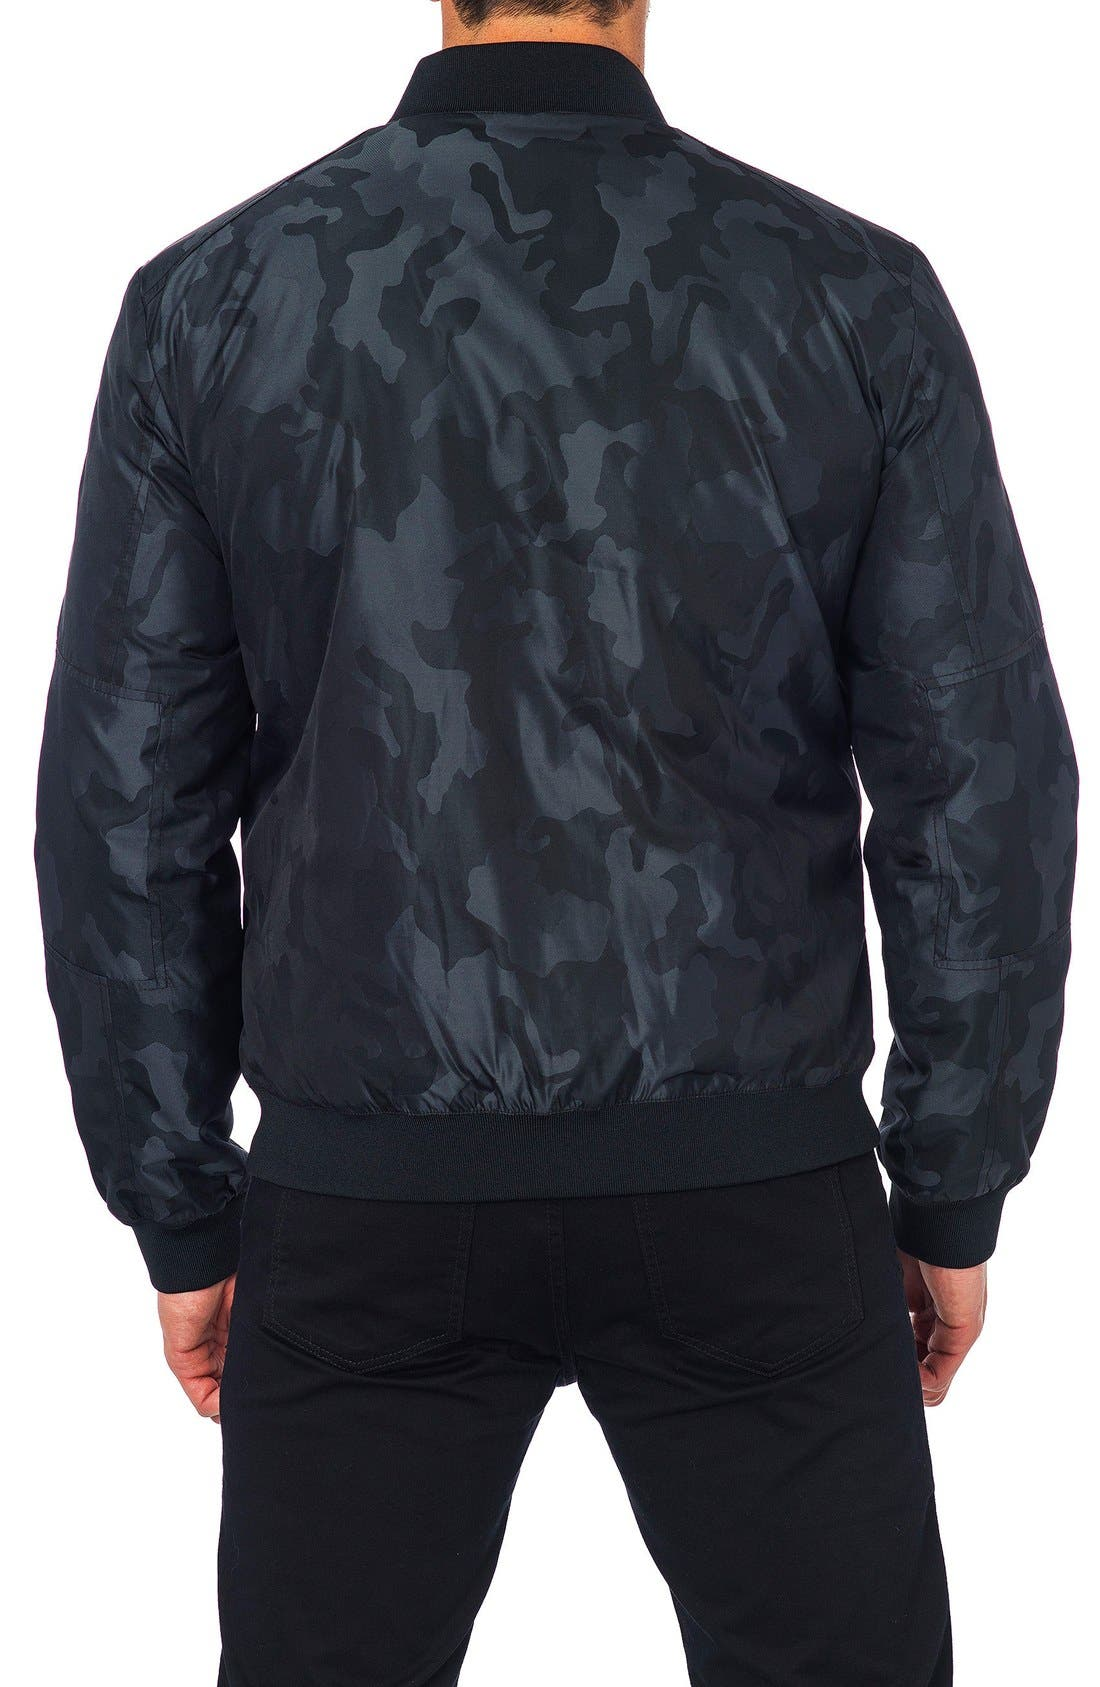 New York Reversible Bomber Jacket,                             Alternate thumbnail 2, color,